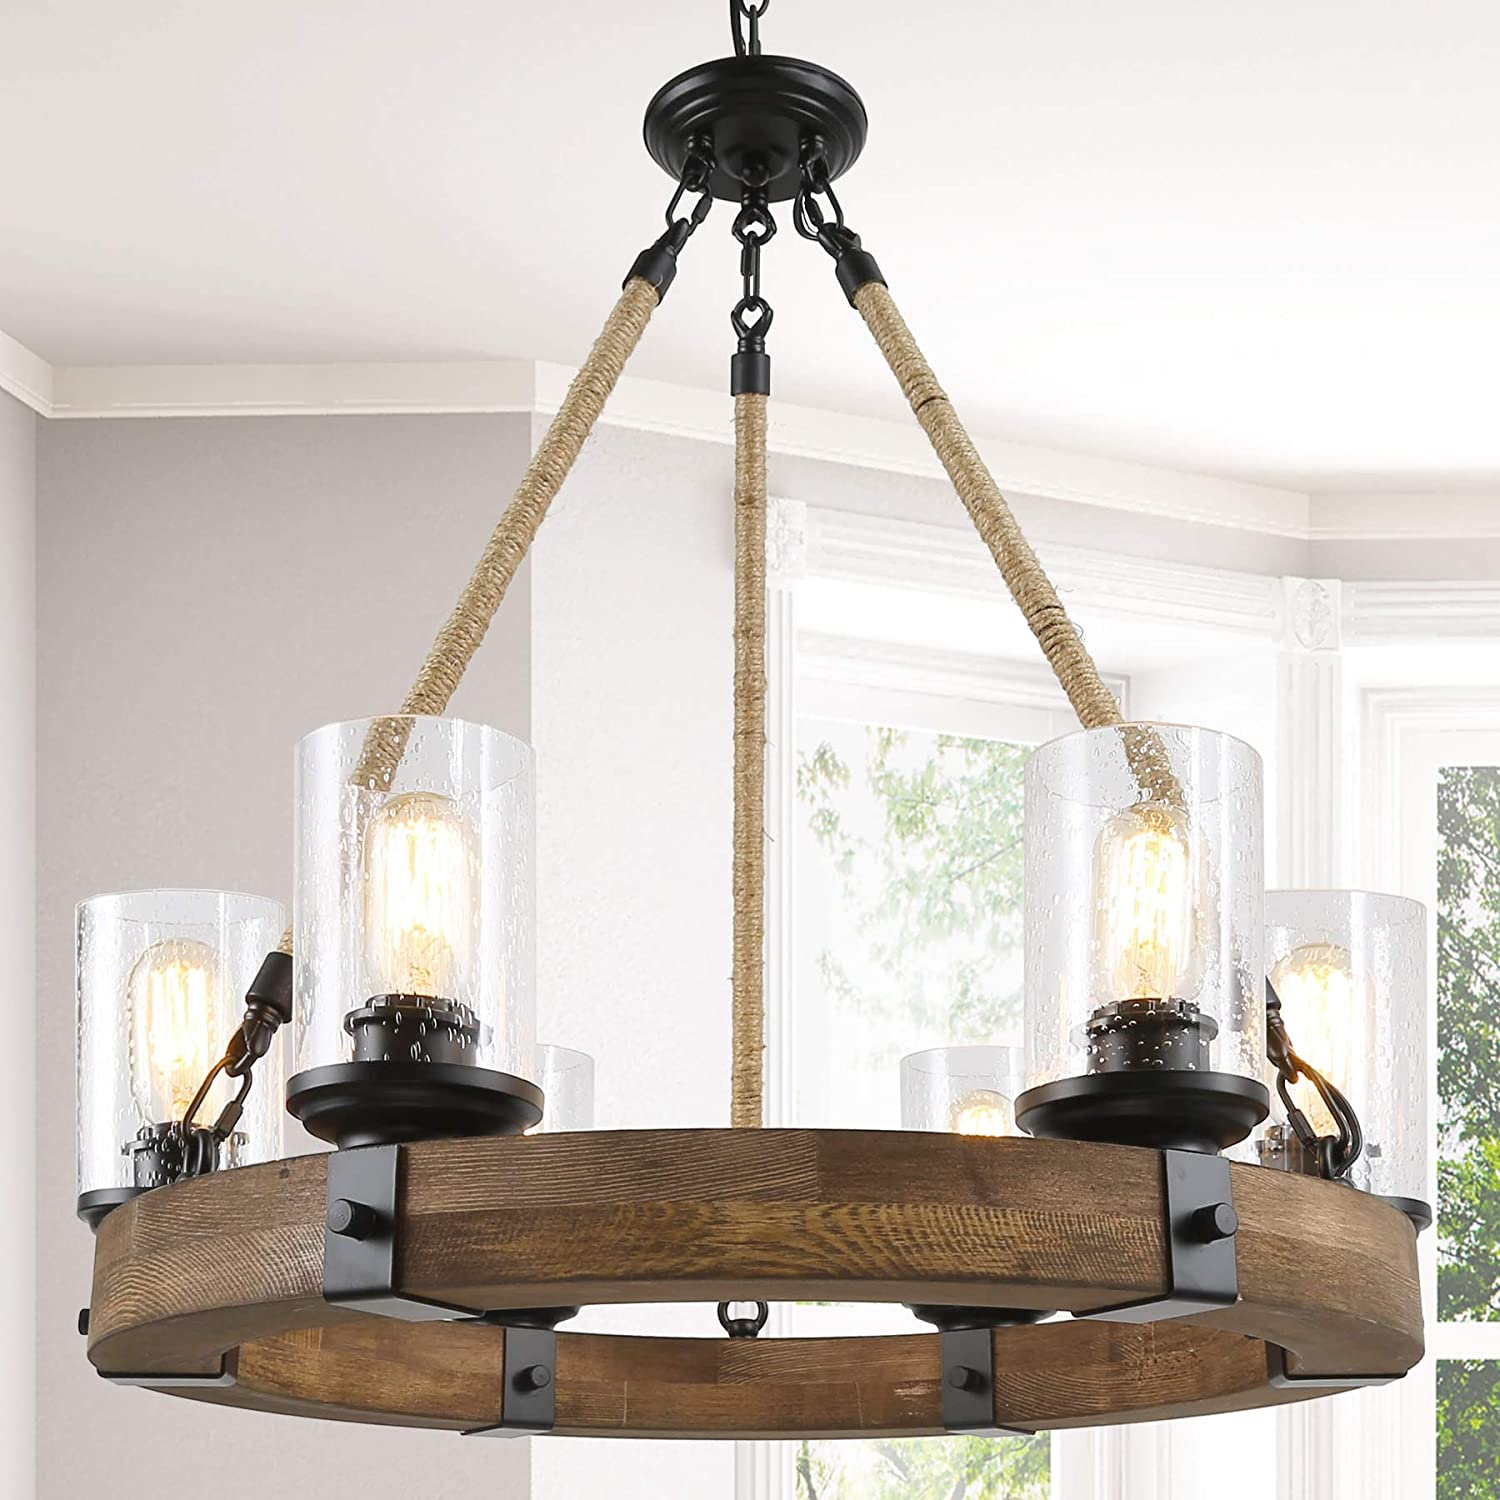 Farmhouse Chandelier for Dining Rooms Wheel 6-Light Denver Mall Wagon Some reservation Chand